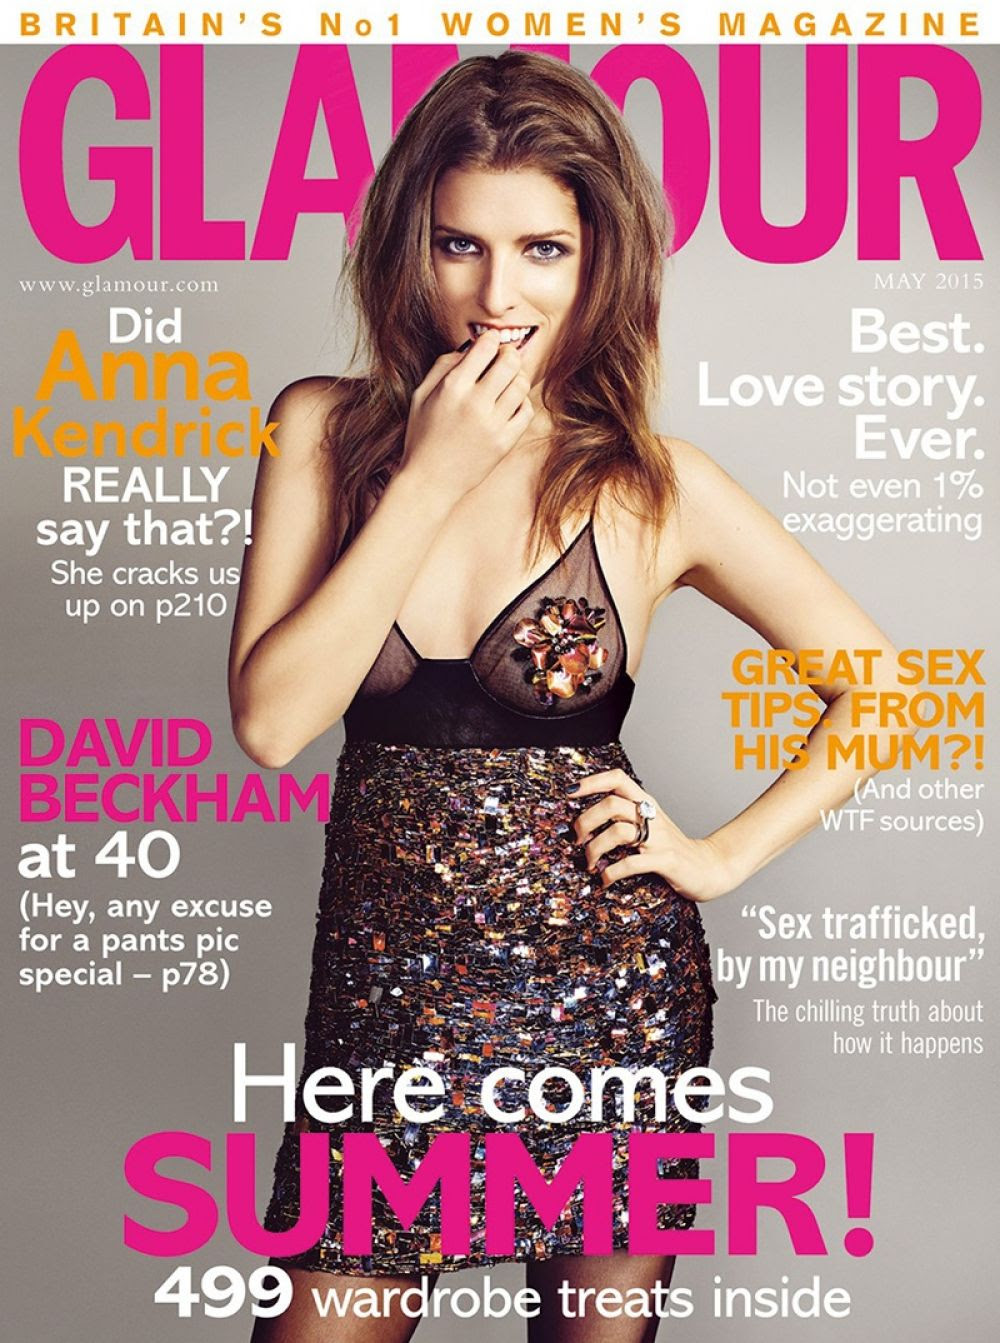 ANNA KENDRICK in Glamour Magazine, May 2015 Issue